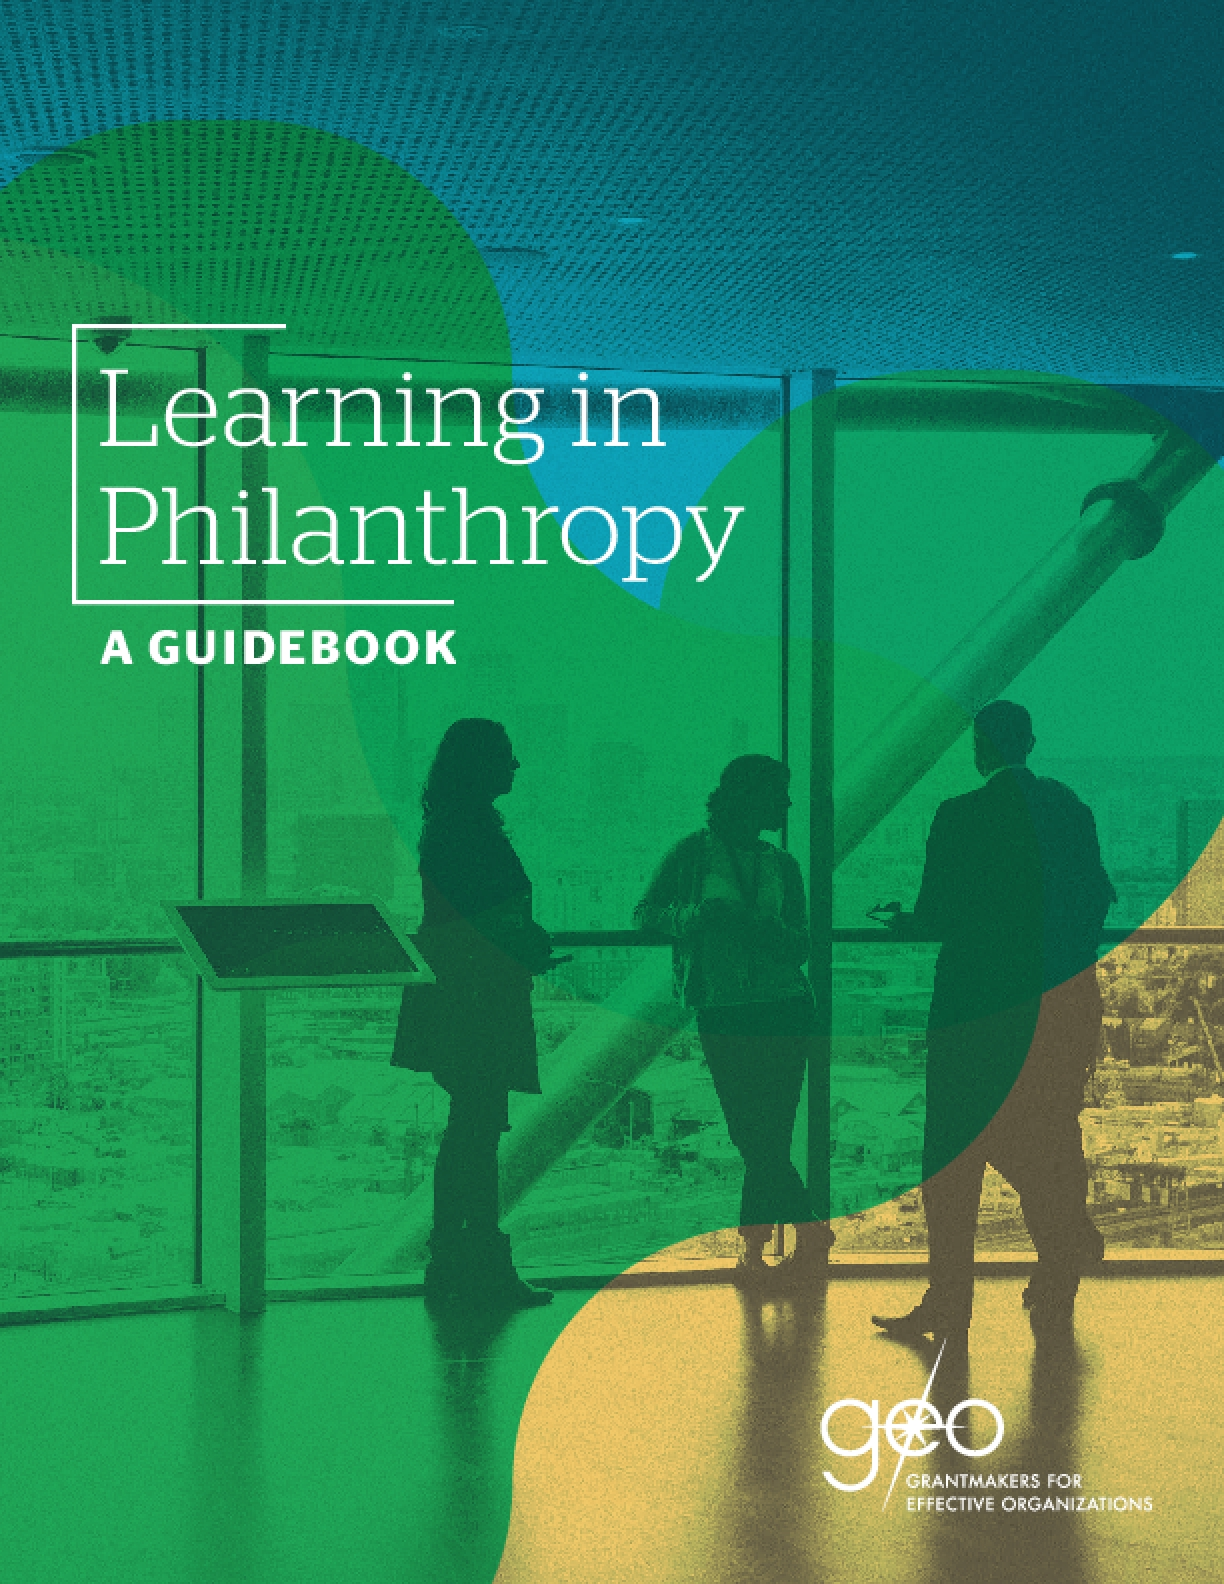 Learning in Philanthropy: A Guidebook